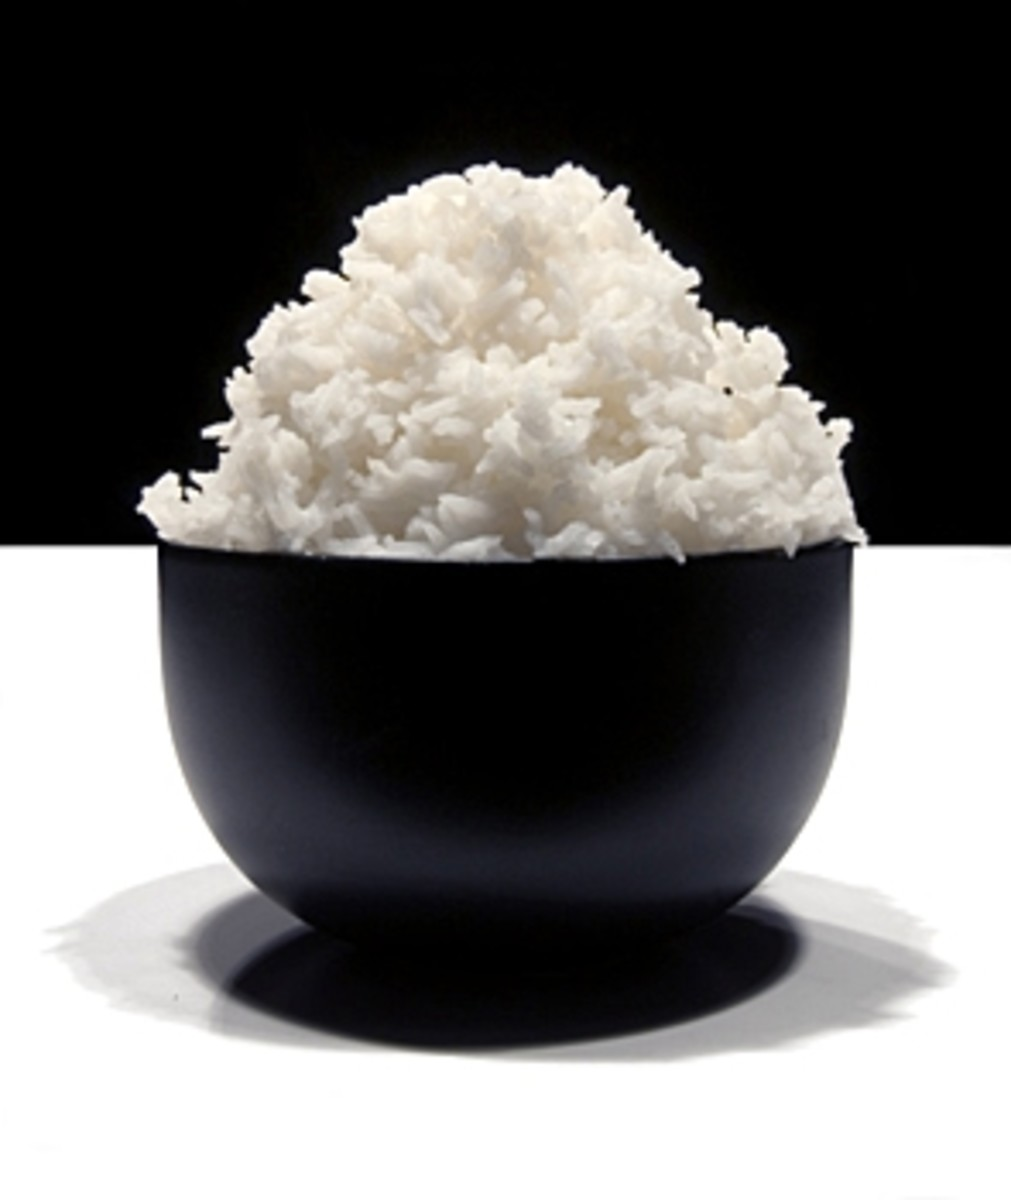 How much rice per person?